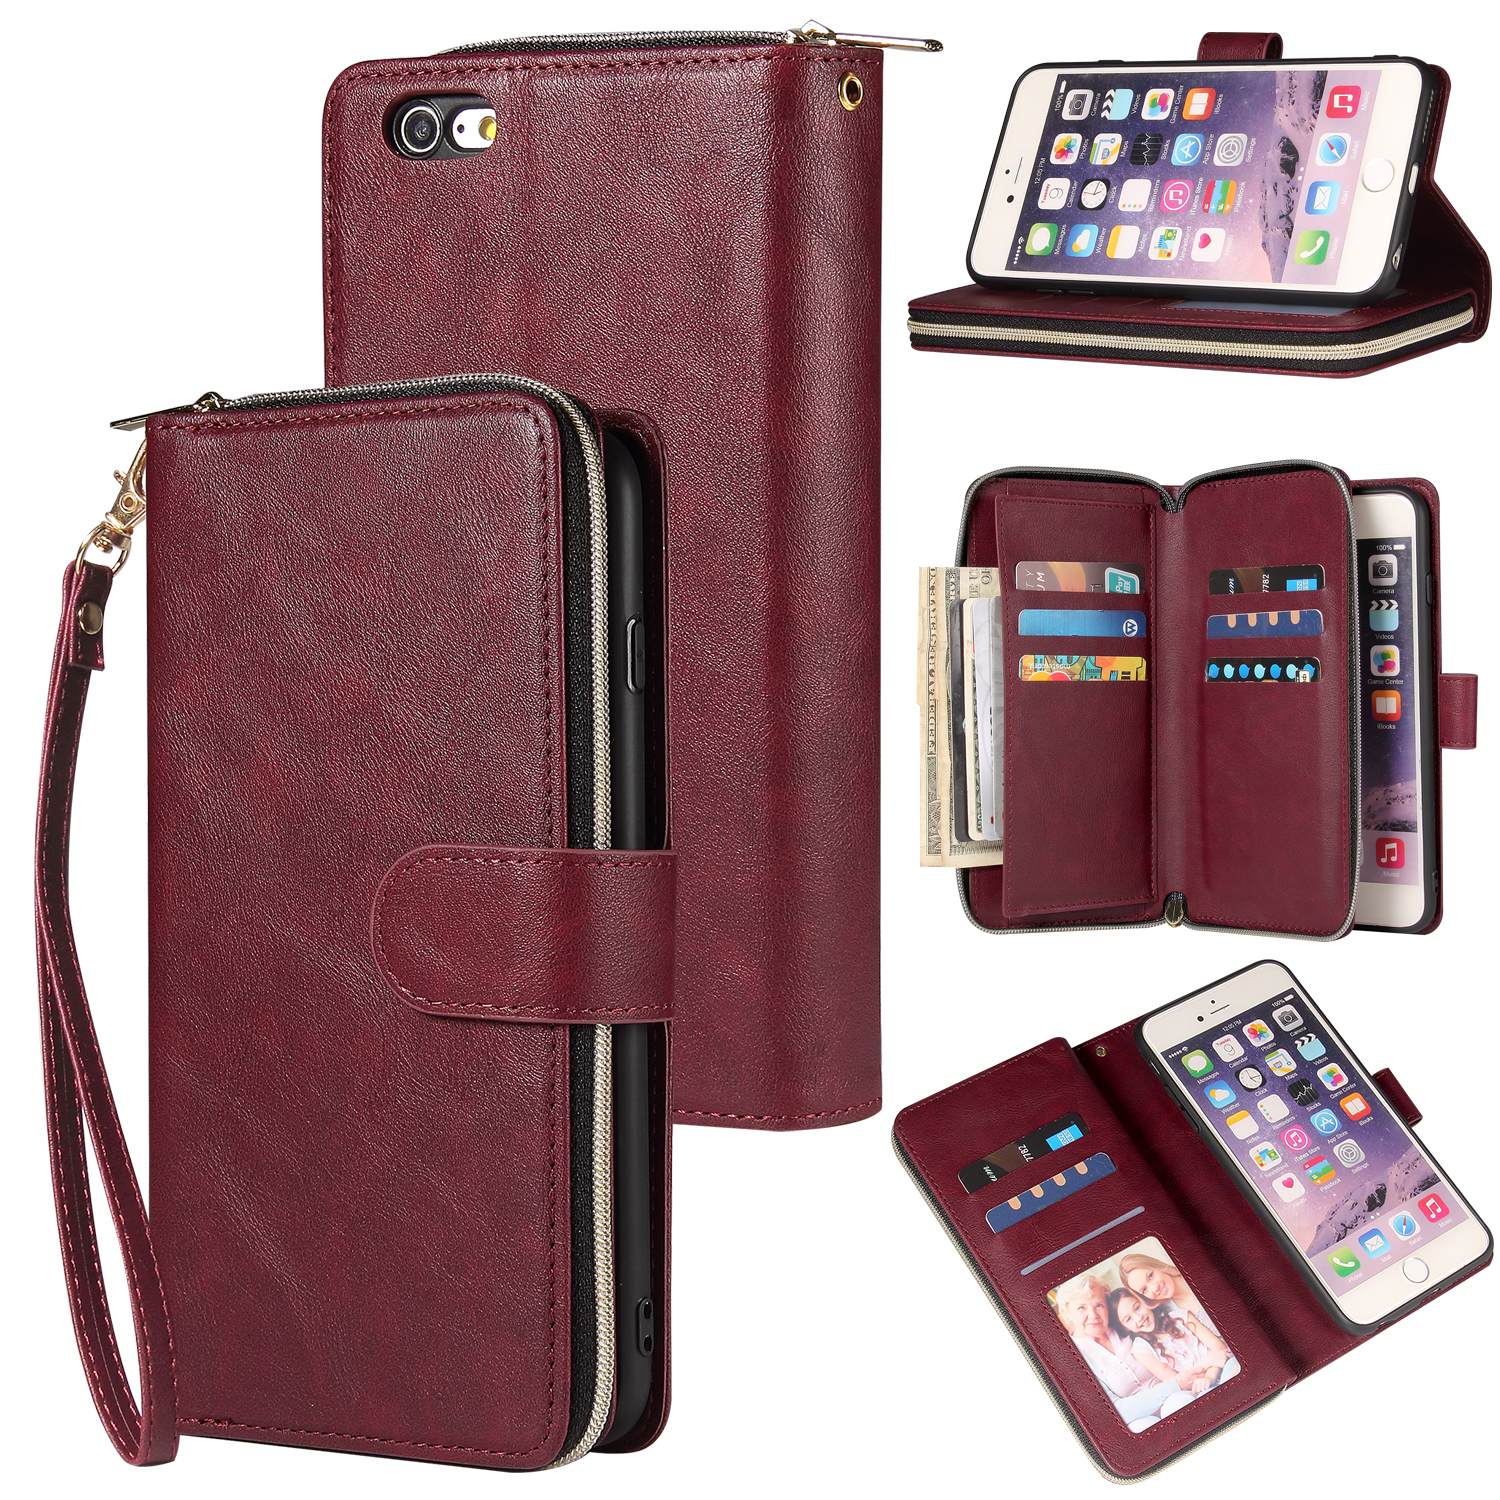 For Iphone 6/6s/6 Plus/6s Plus/7 Plus/8 Plus Pu Leather  Mobile Phone Cover Zipper Card Bag + Wrist Strap Red wine